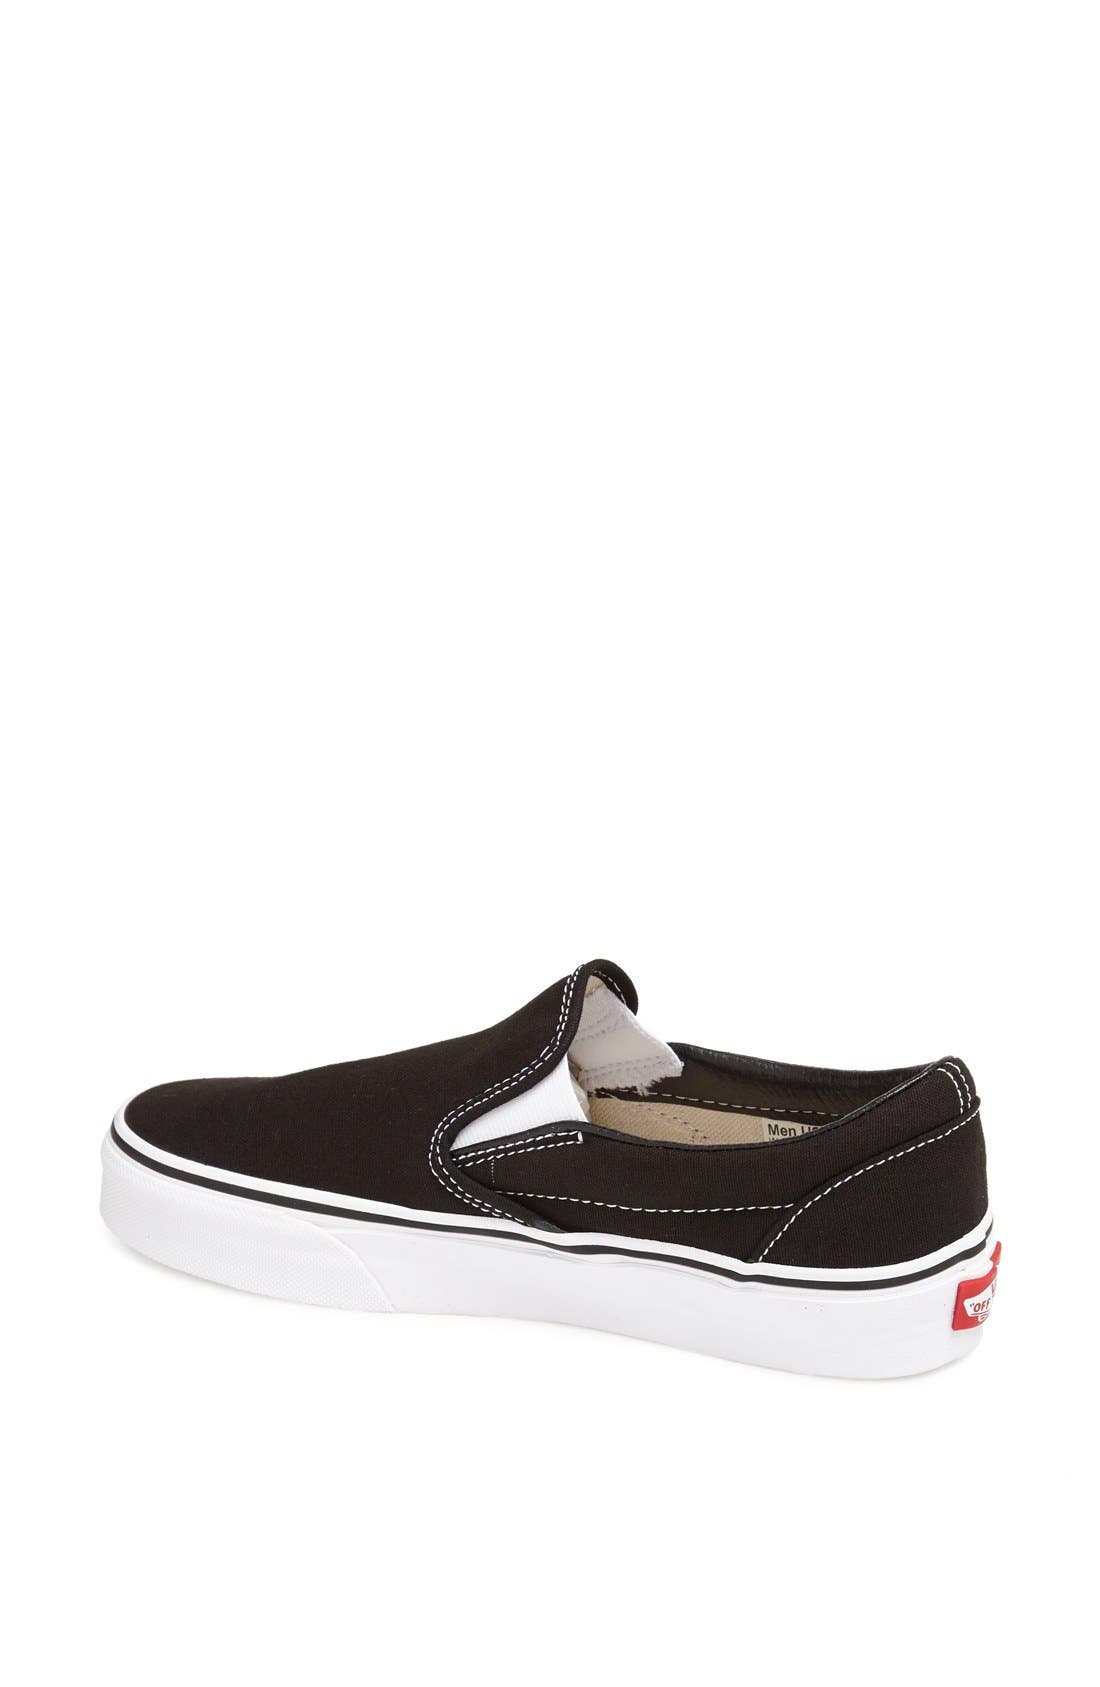 VANS, Classic Slip-On Sneaker, Alternate thumbnail 5, color, BLACK